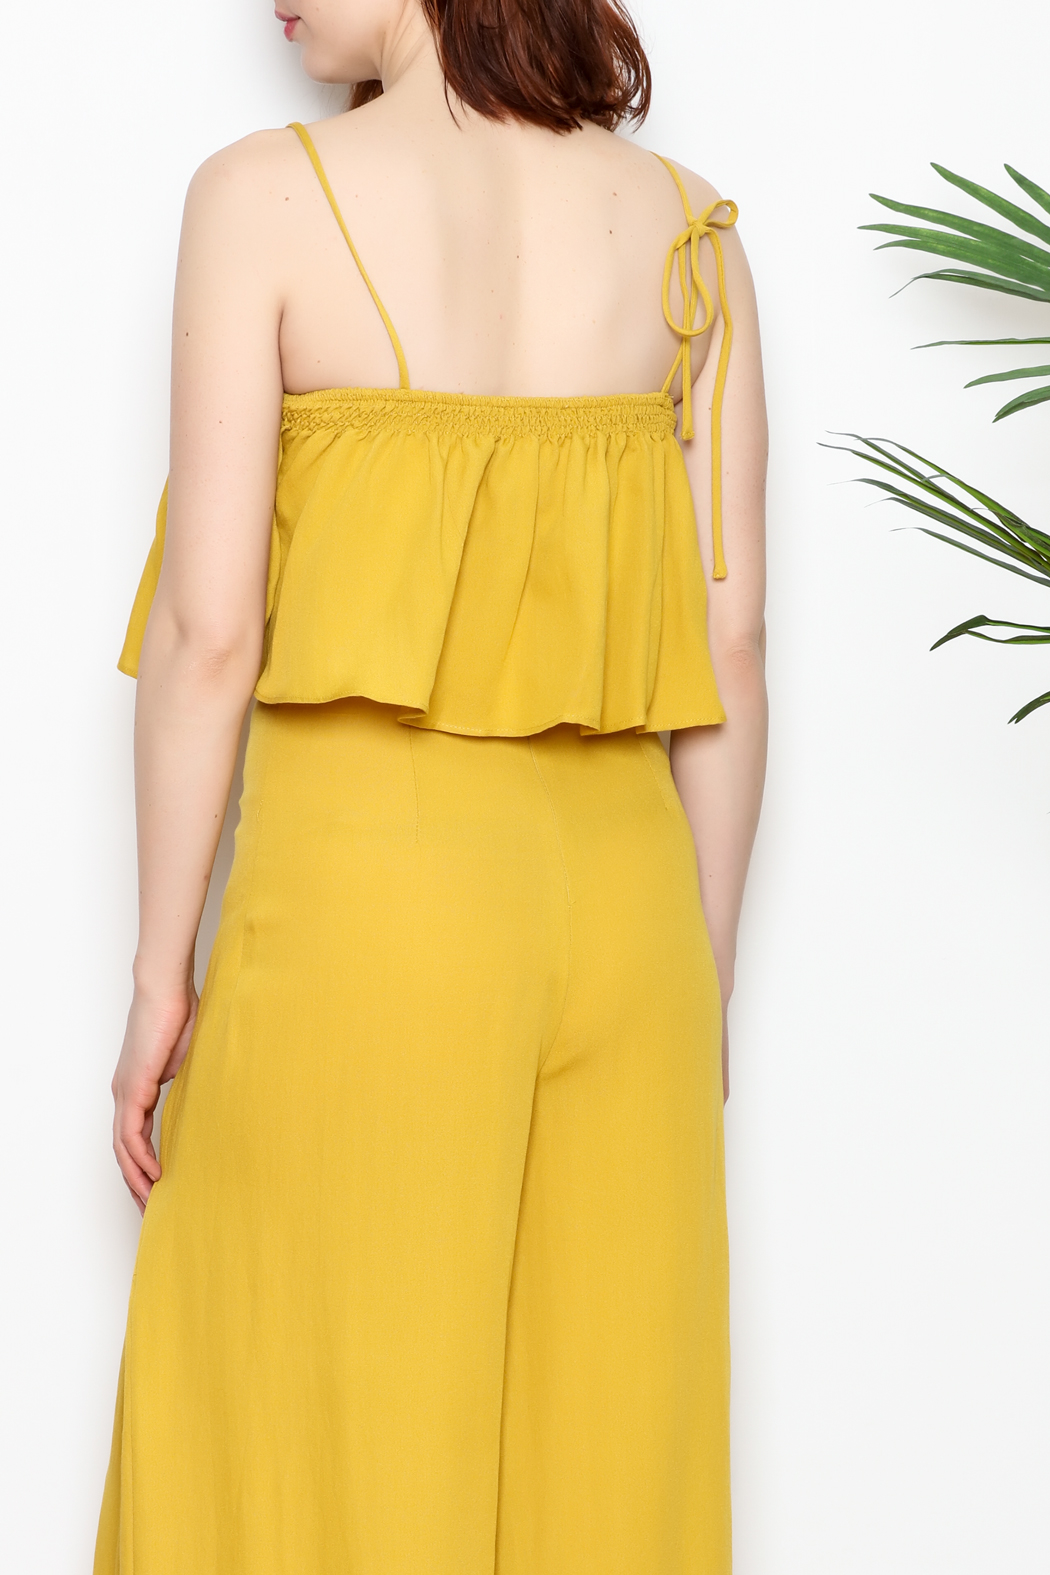 re:named Mustard Crop Top - Back Cropped Image